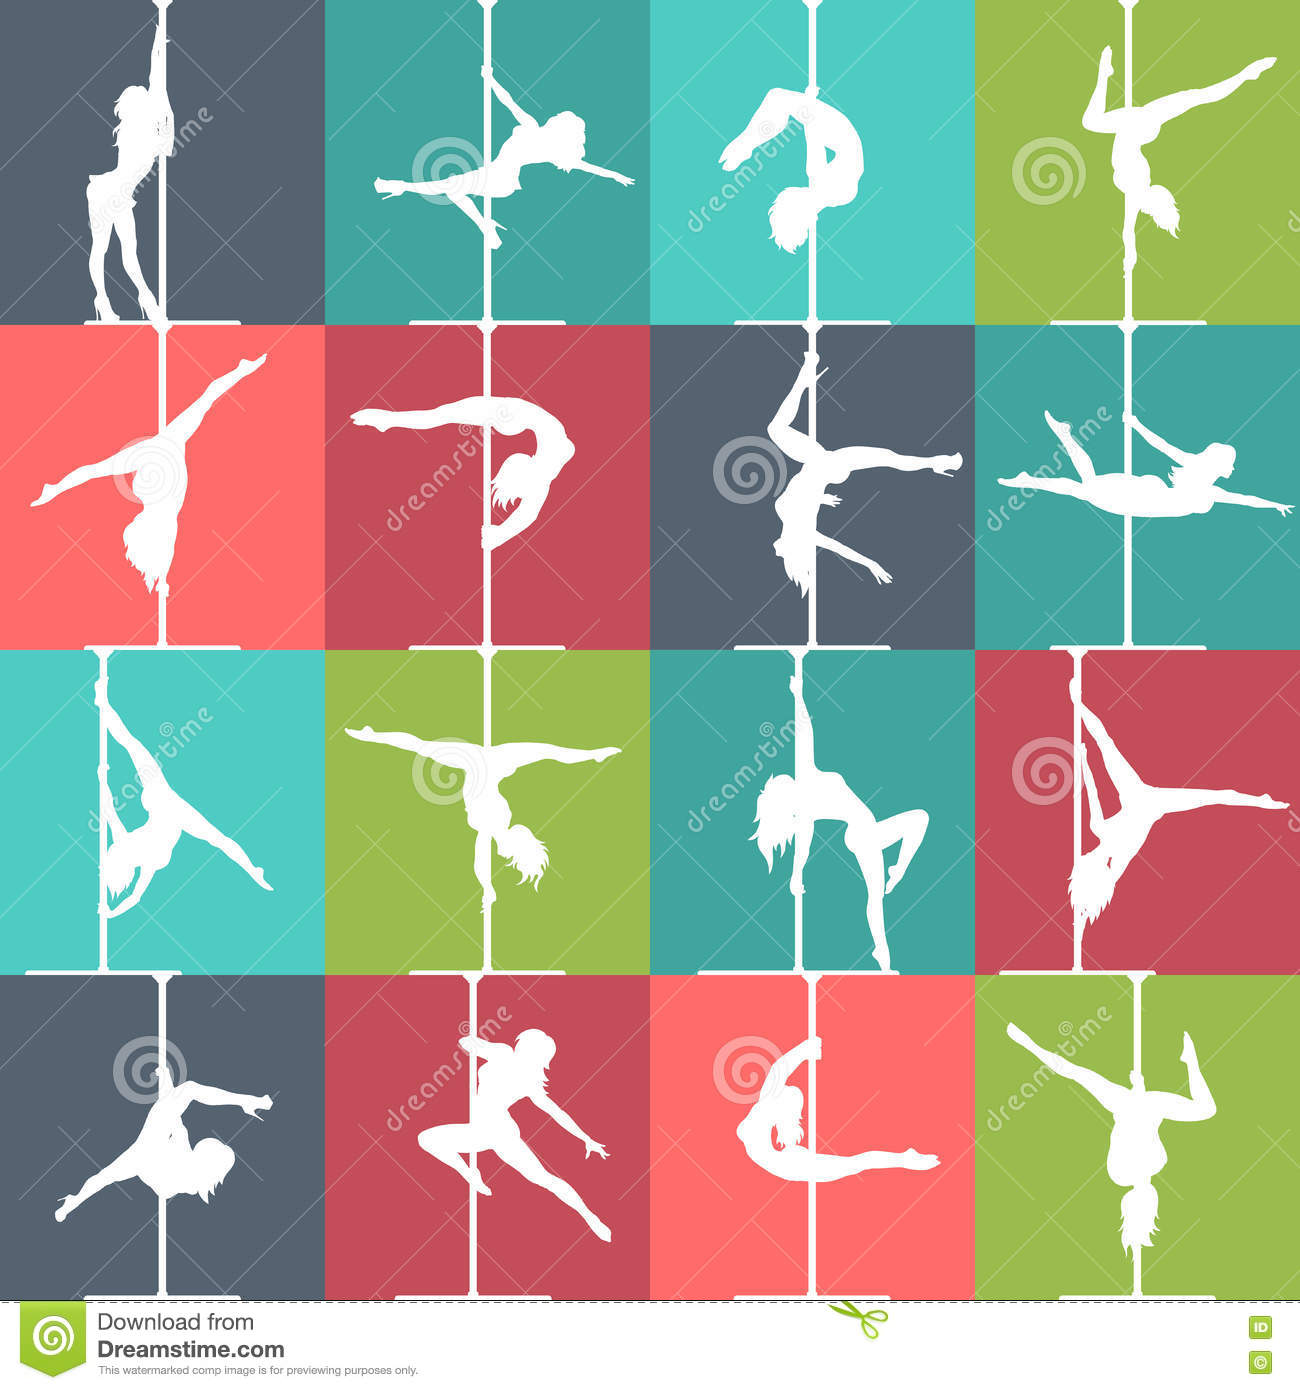 How To Attempt A Good Strip flat-style-pole-dance-pole-fitness-icons-vector-silhouettes-female-pole-dancers-colorful-76268699